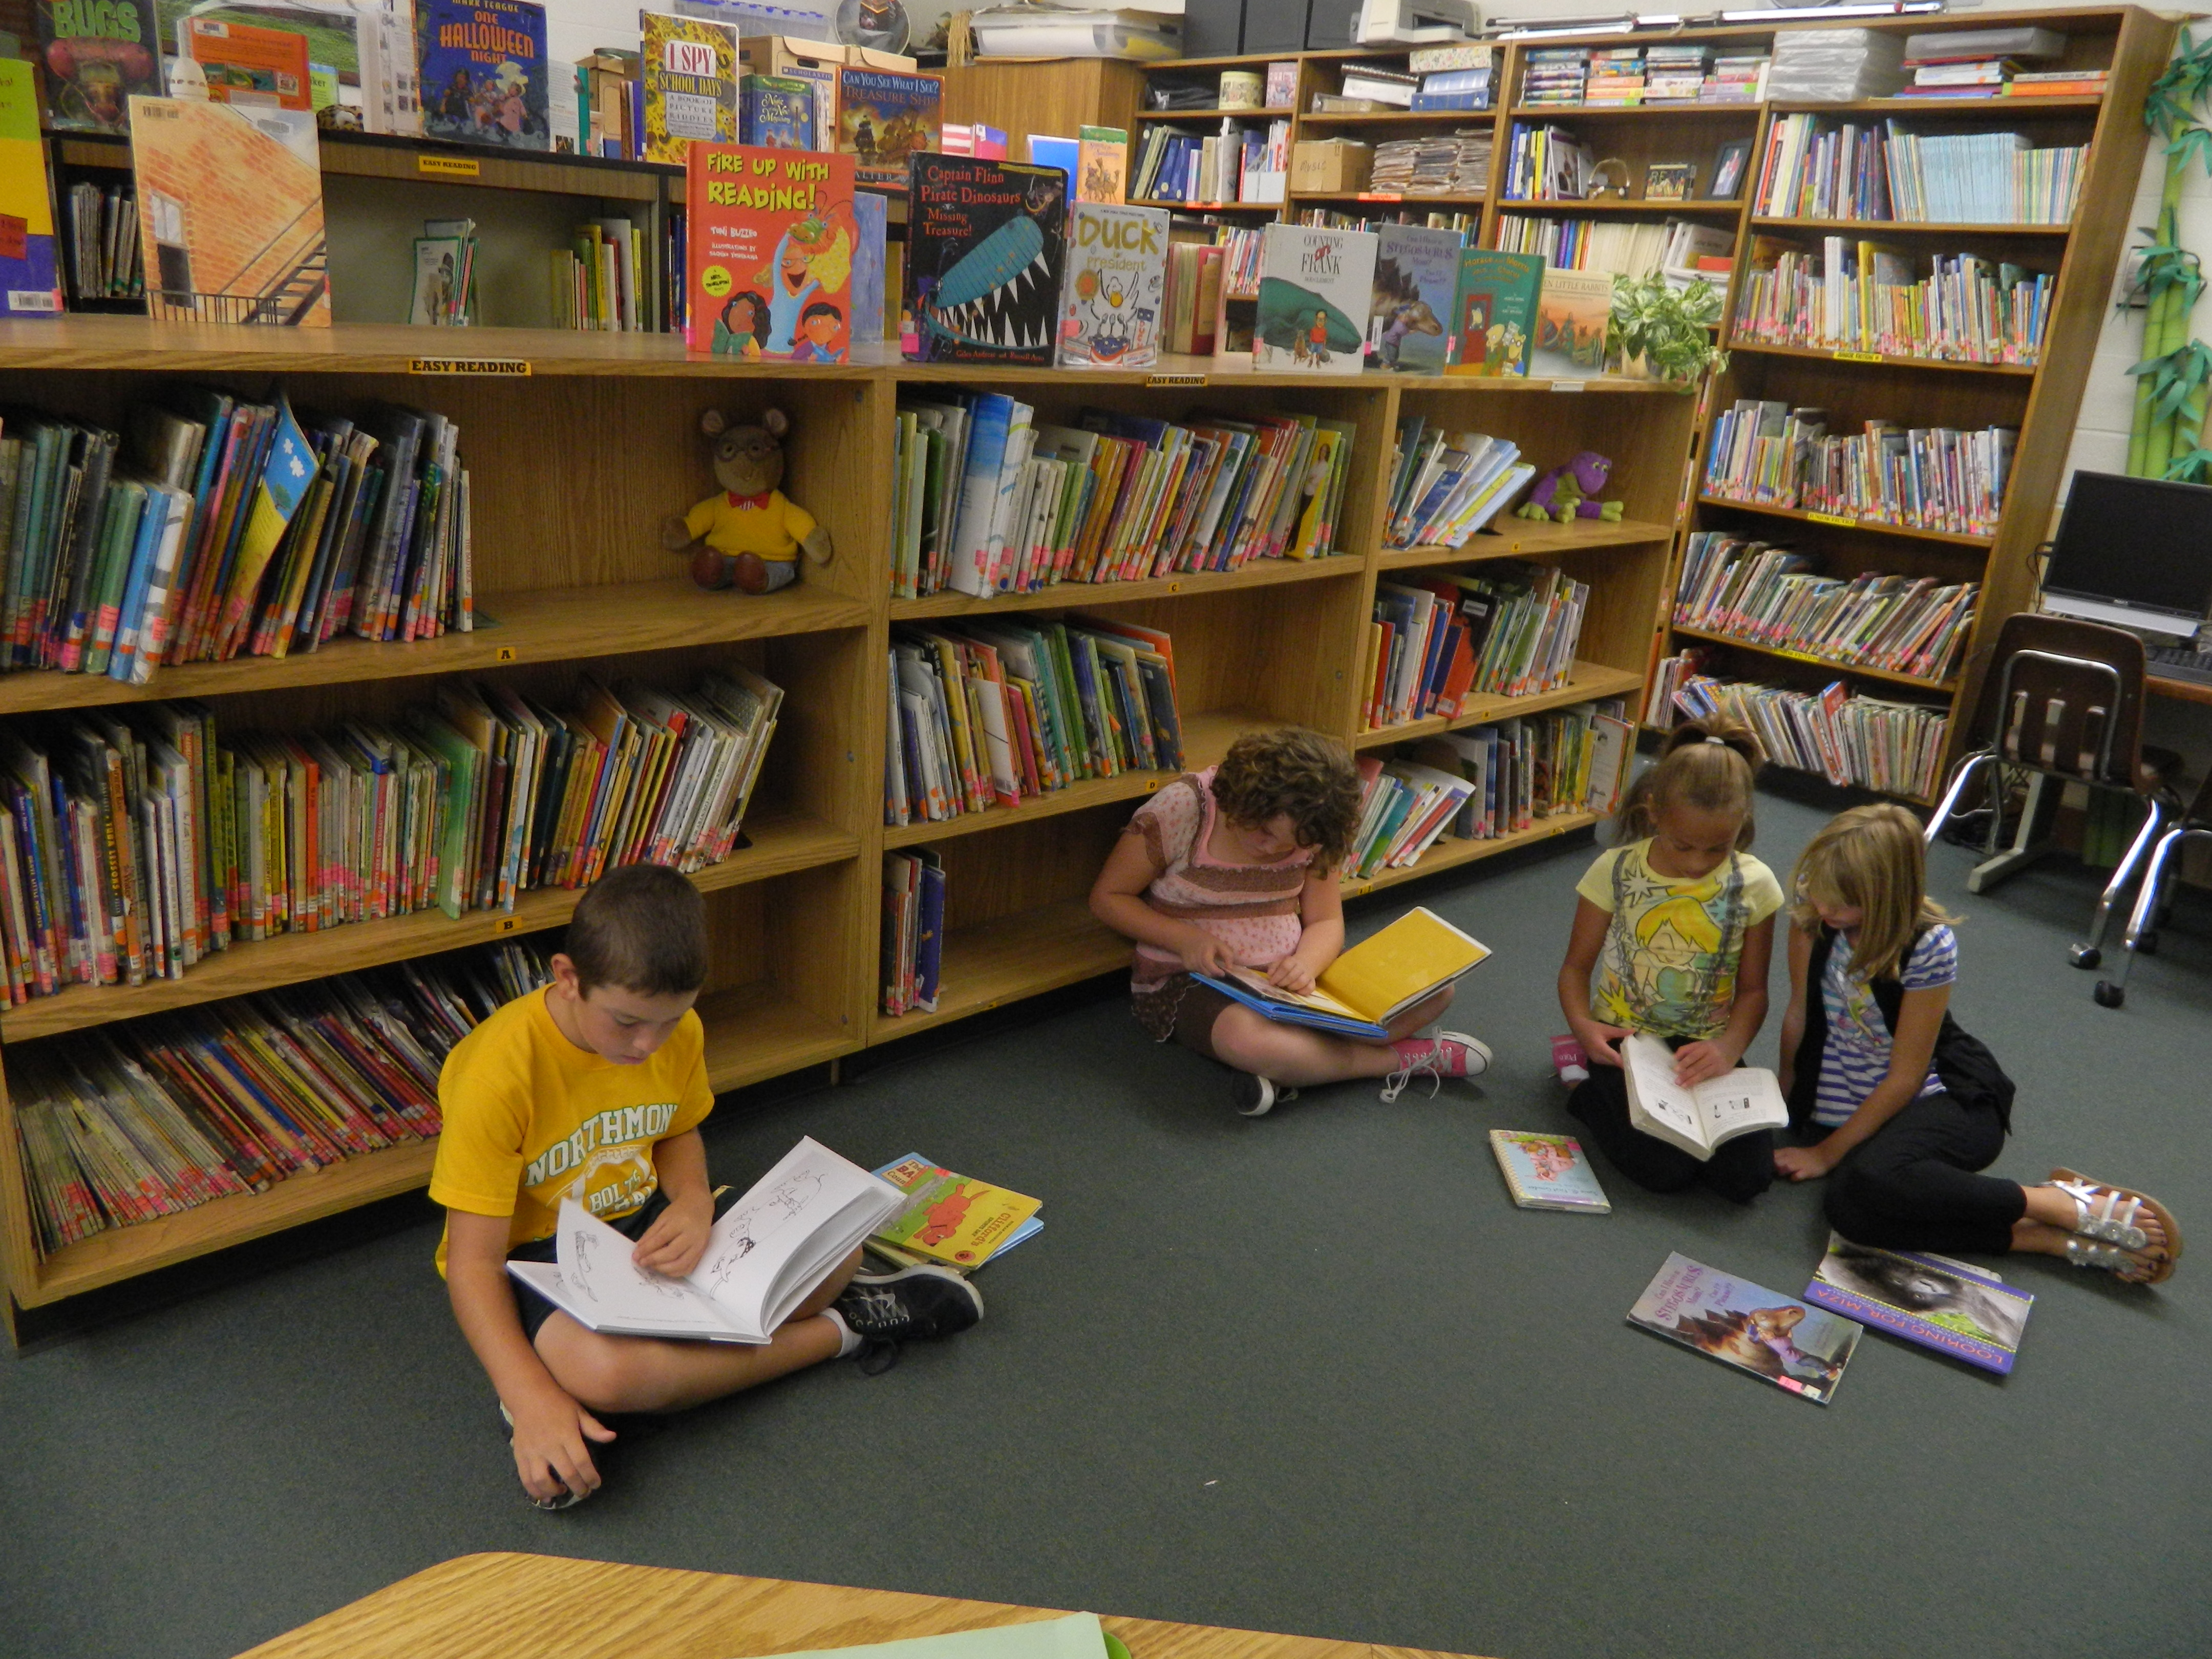 Children Read Books in Library 978.85 Kb